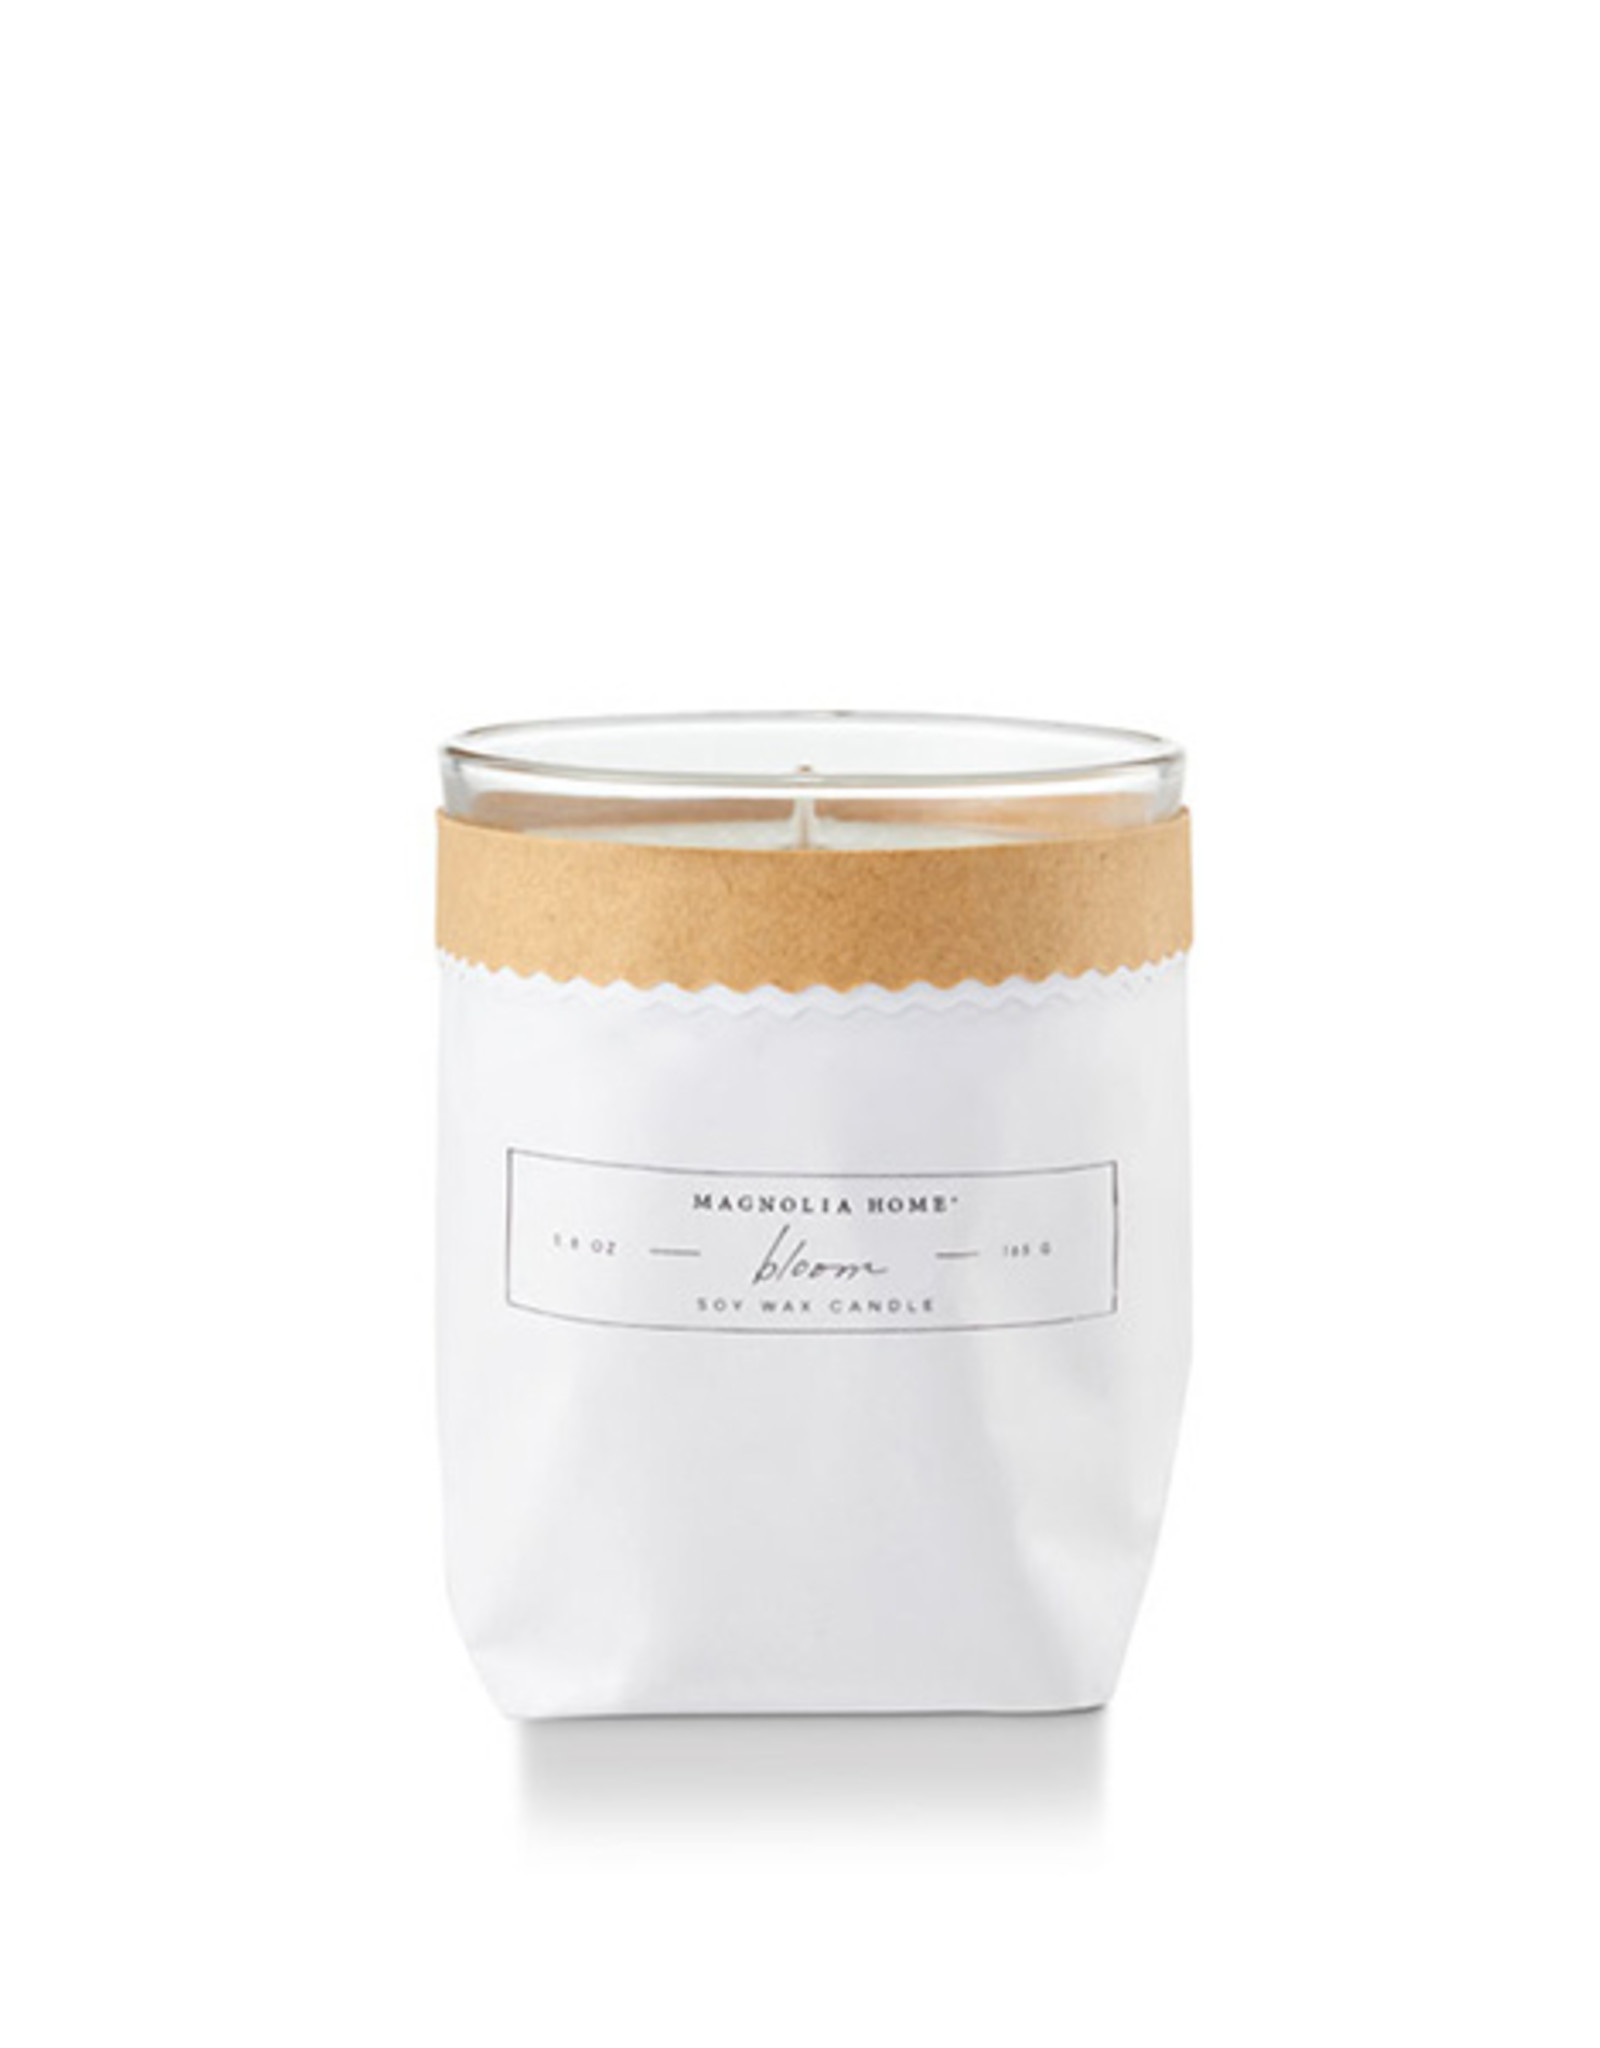 Magnolia Home - Bloom Scent Bagged Glass Candle